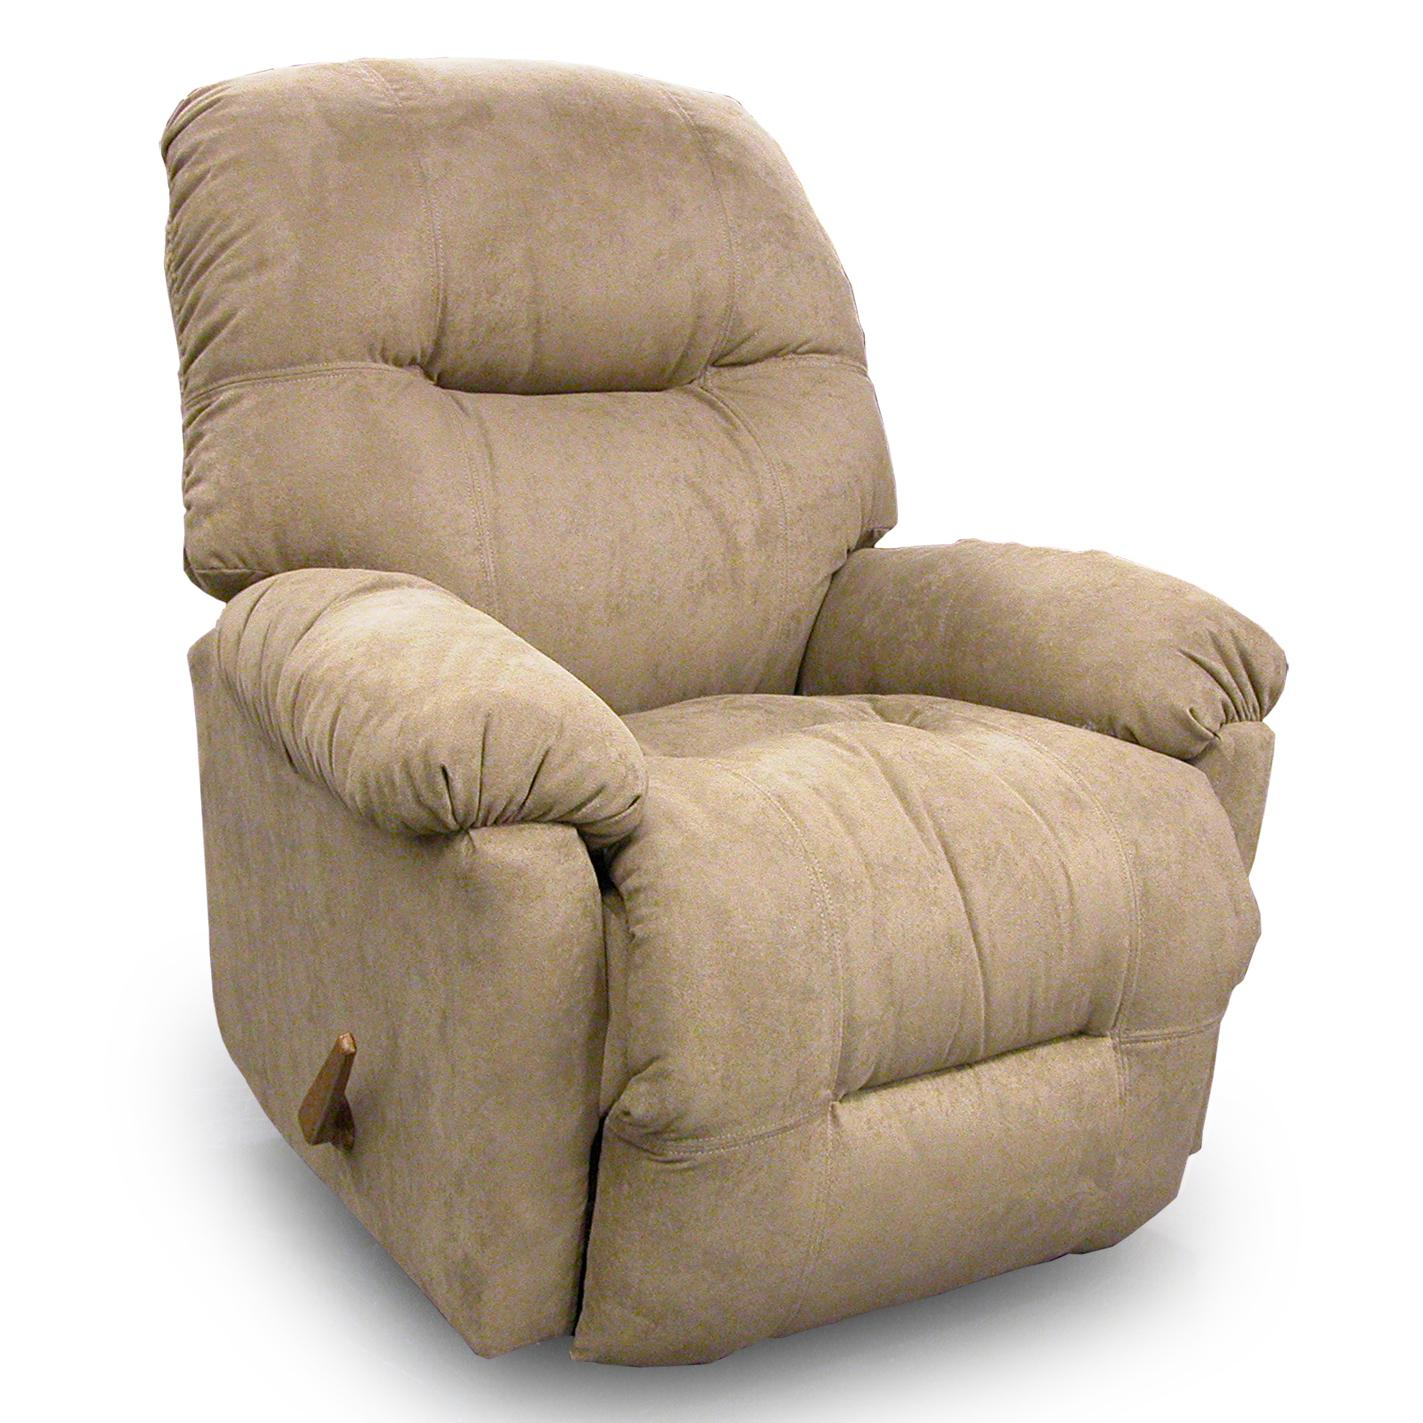 Petite Recliners Wynette Rocker Recliner by Best Home Furnishings at Gill Brothers Furniture